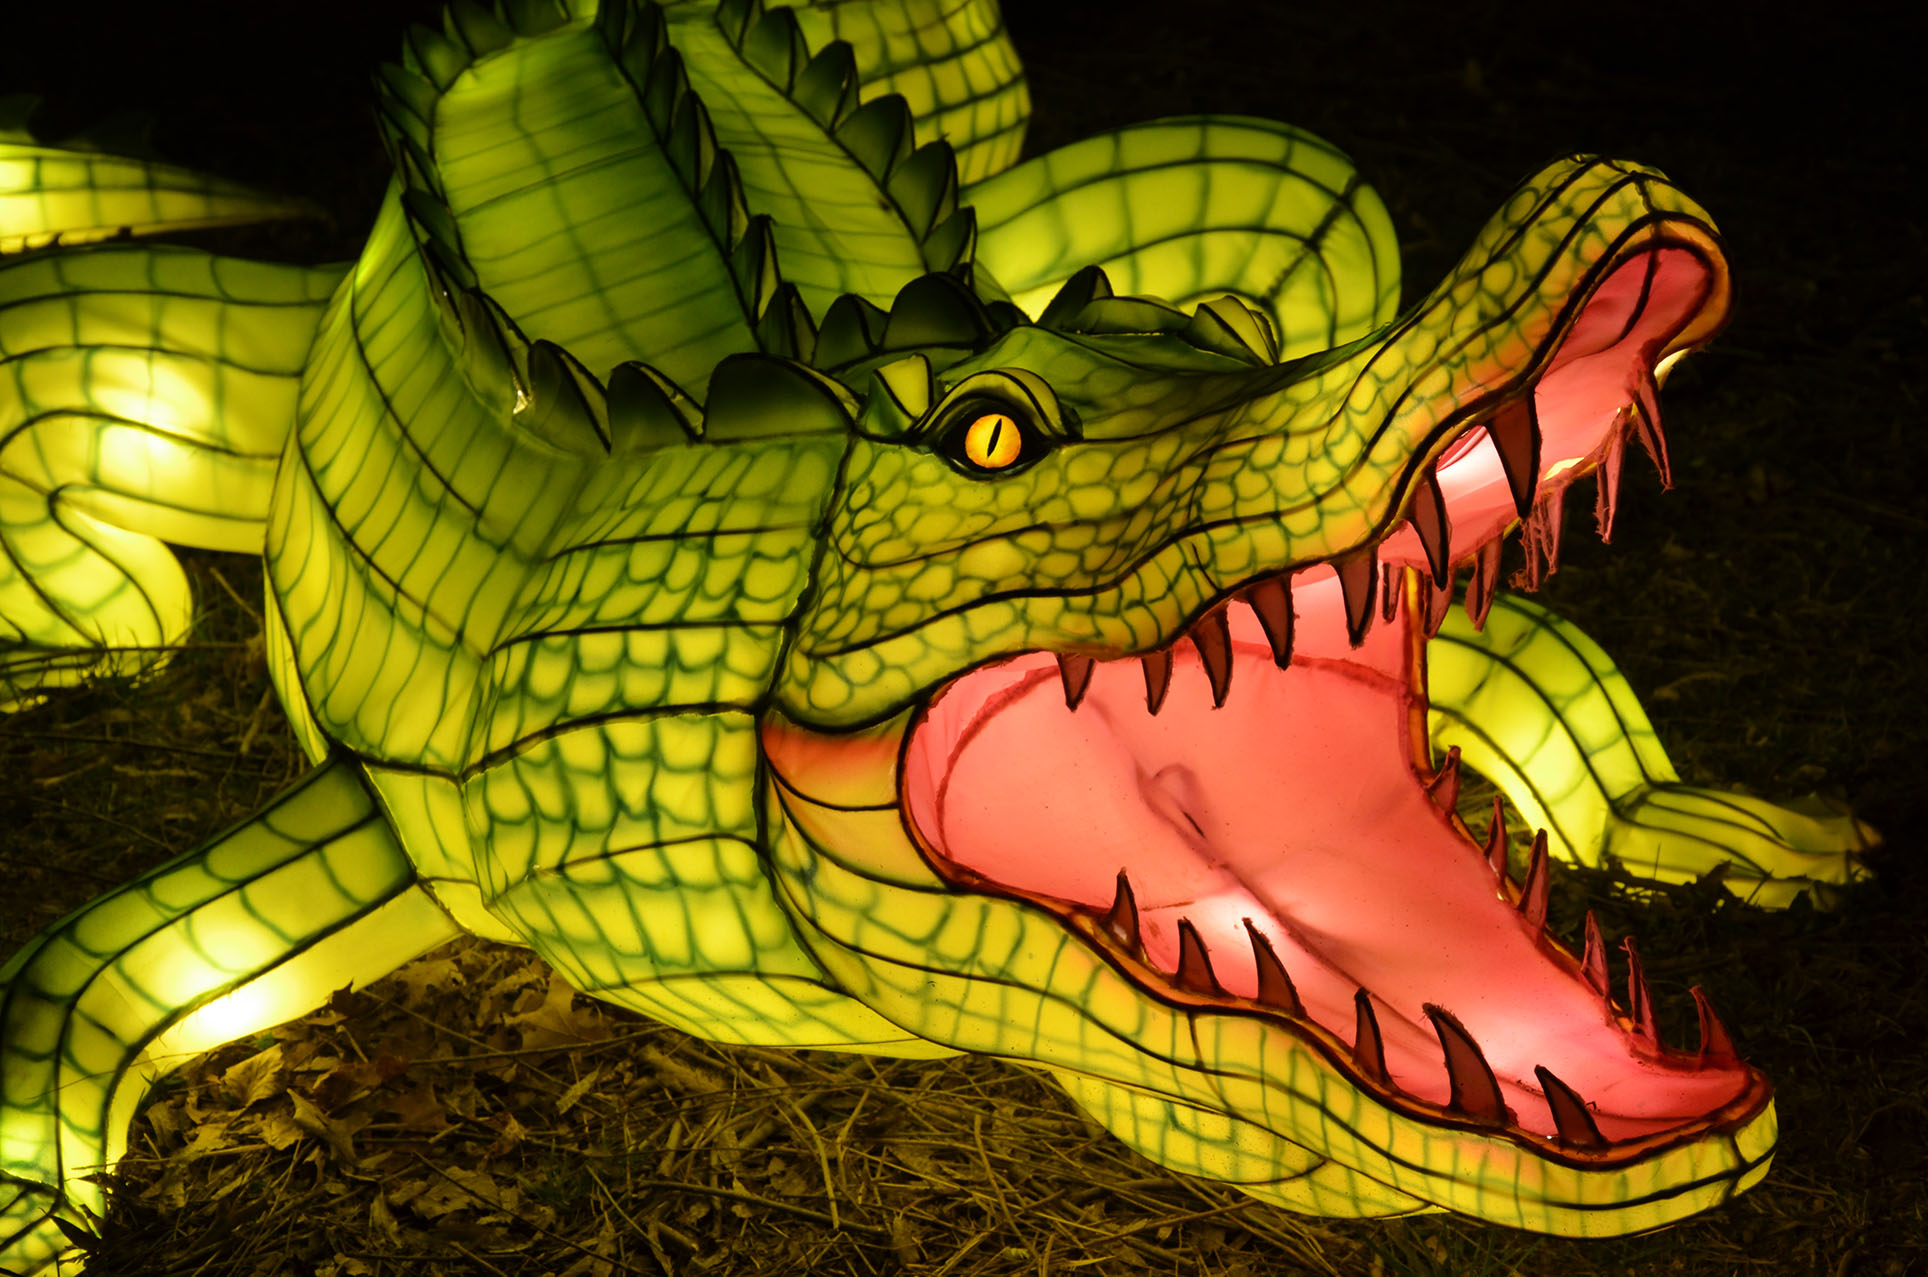 Chinese Lantern Festival S The Wild Exhibit Opens This